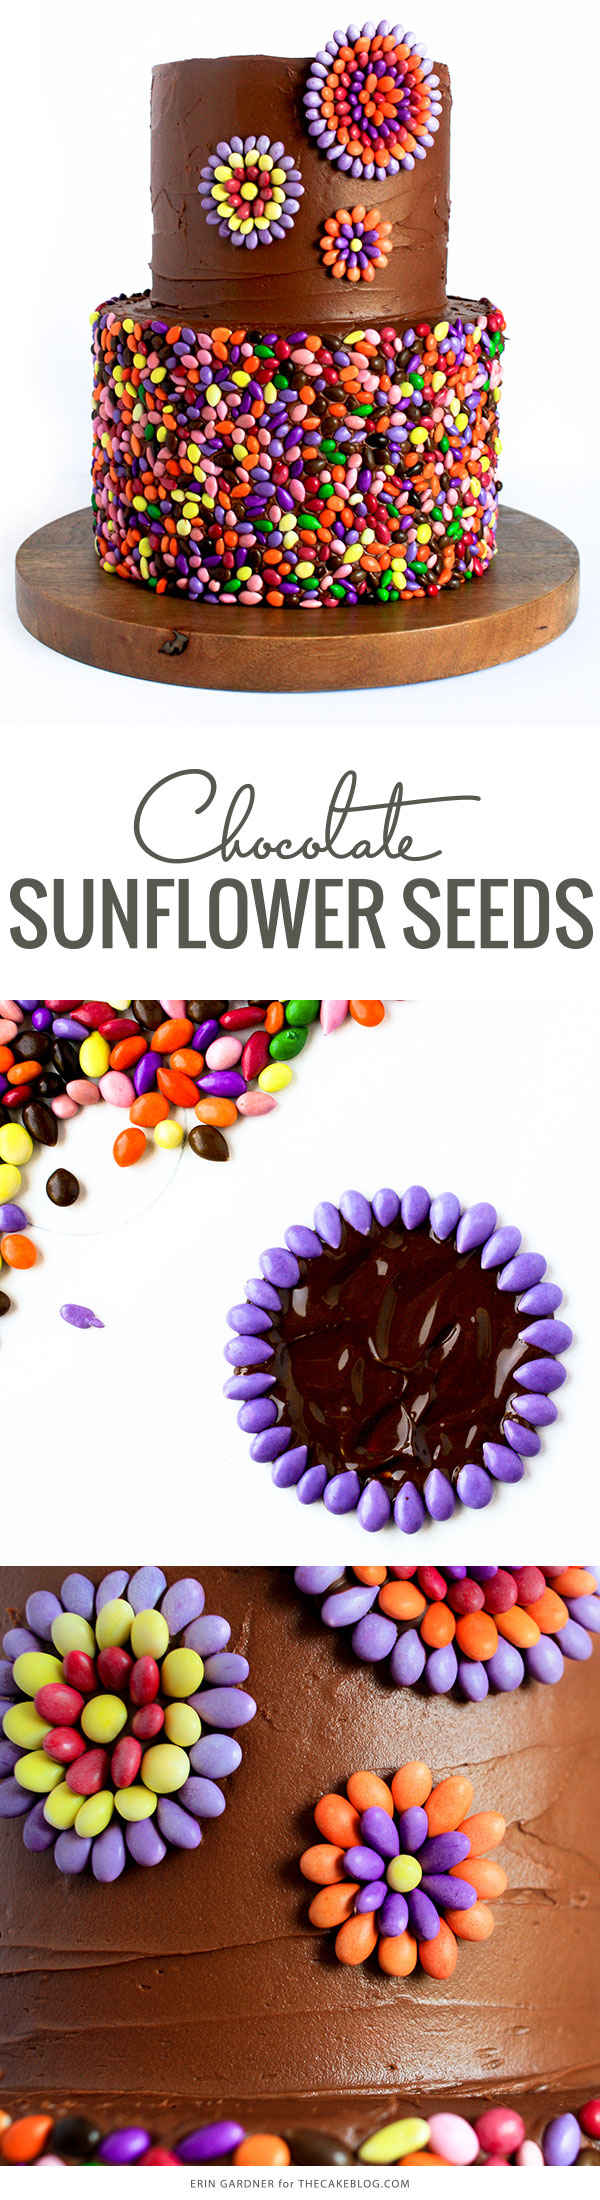 Chocolate Sunflower Seed Cake | by Erin Gardner for TheCakeBlog.com